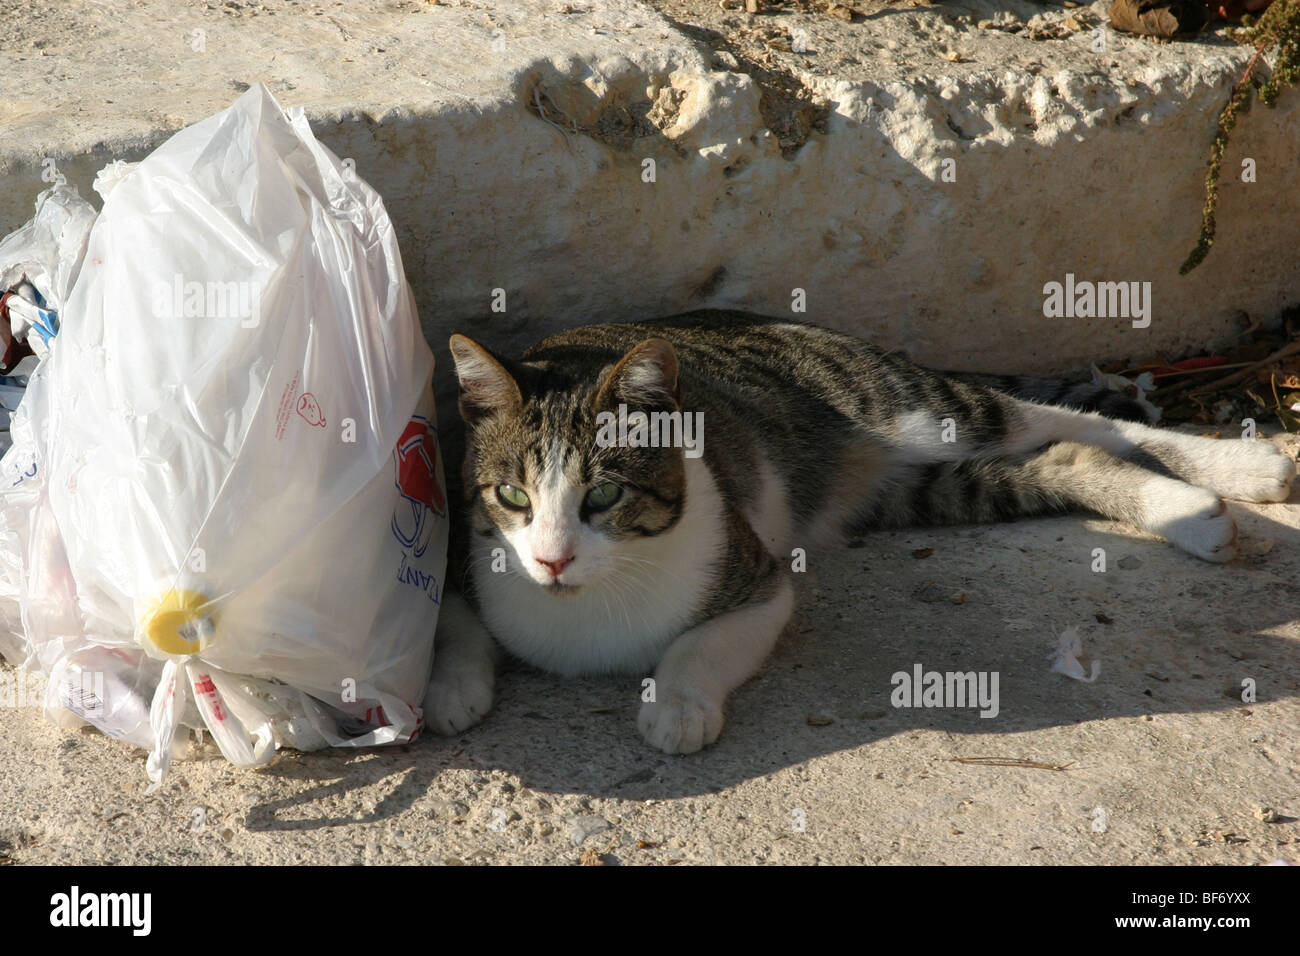 Cat lying next to rubbish bag - Stock Image